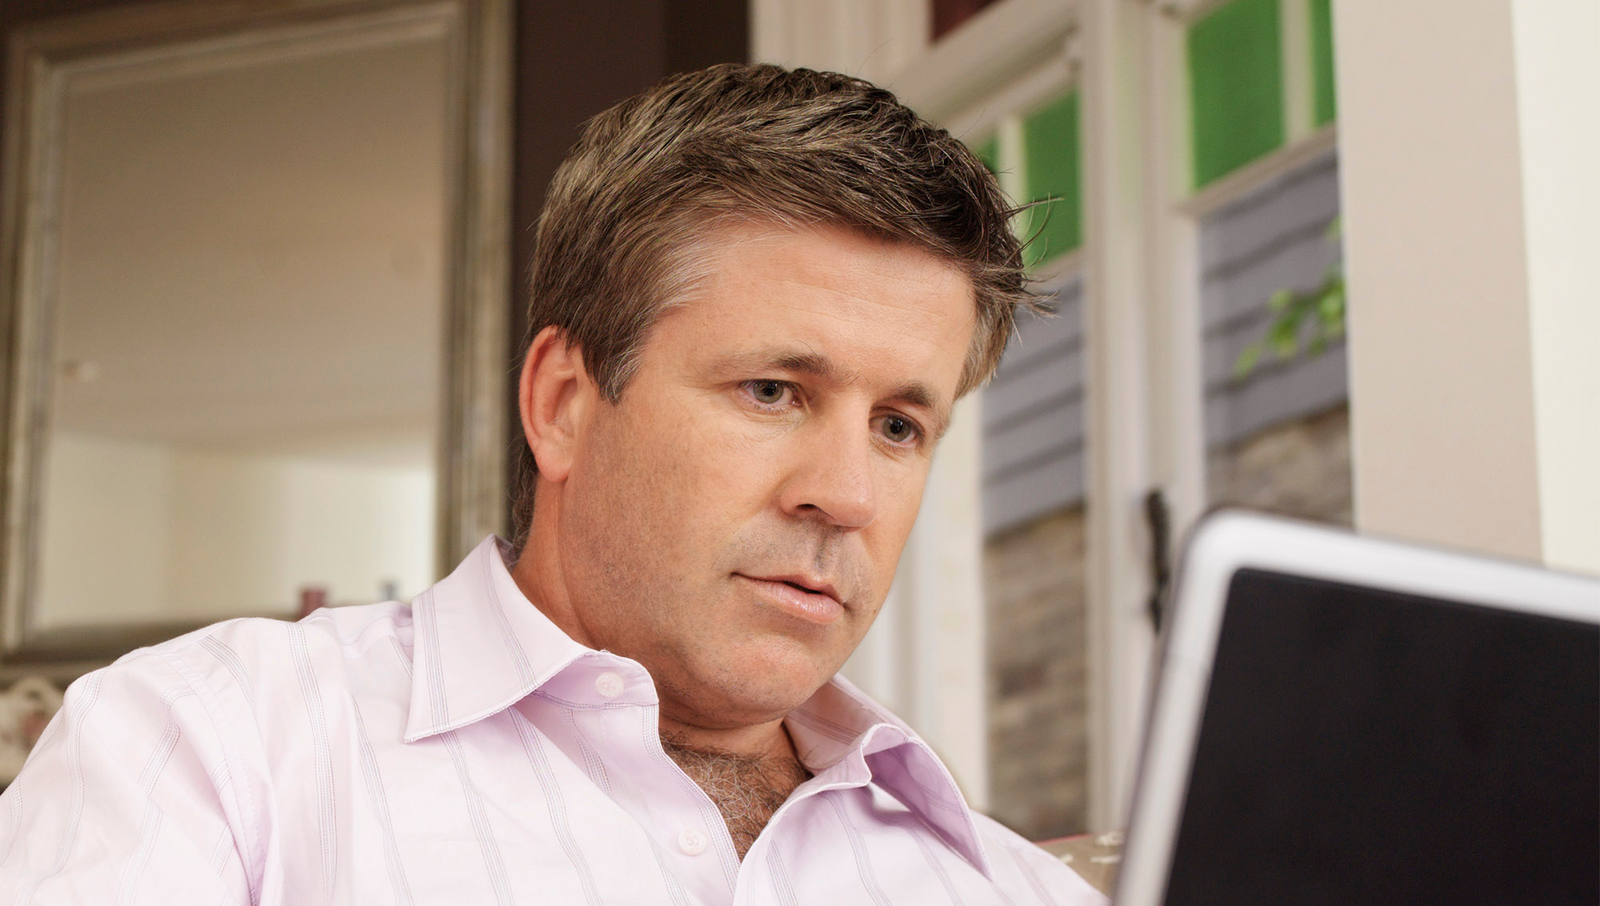 Man Googling 'Tender Lump On Neck' About To Begin Exciting New Phase In Life